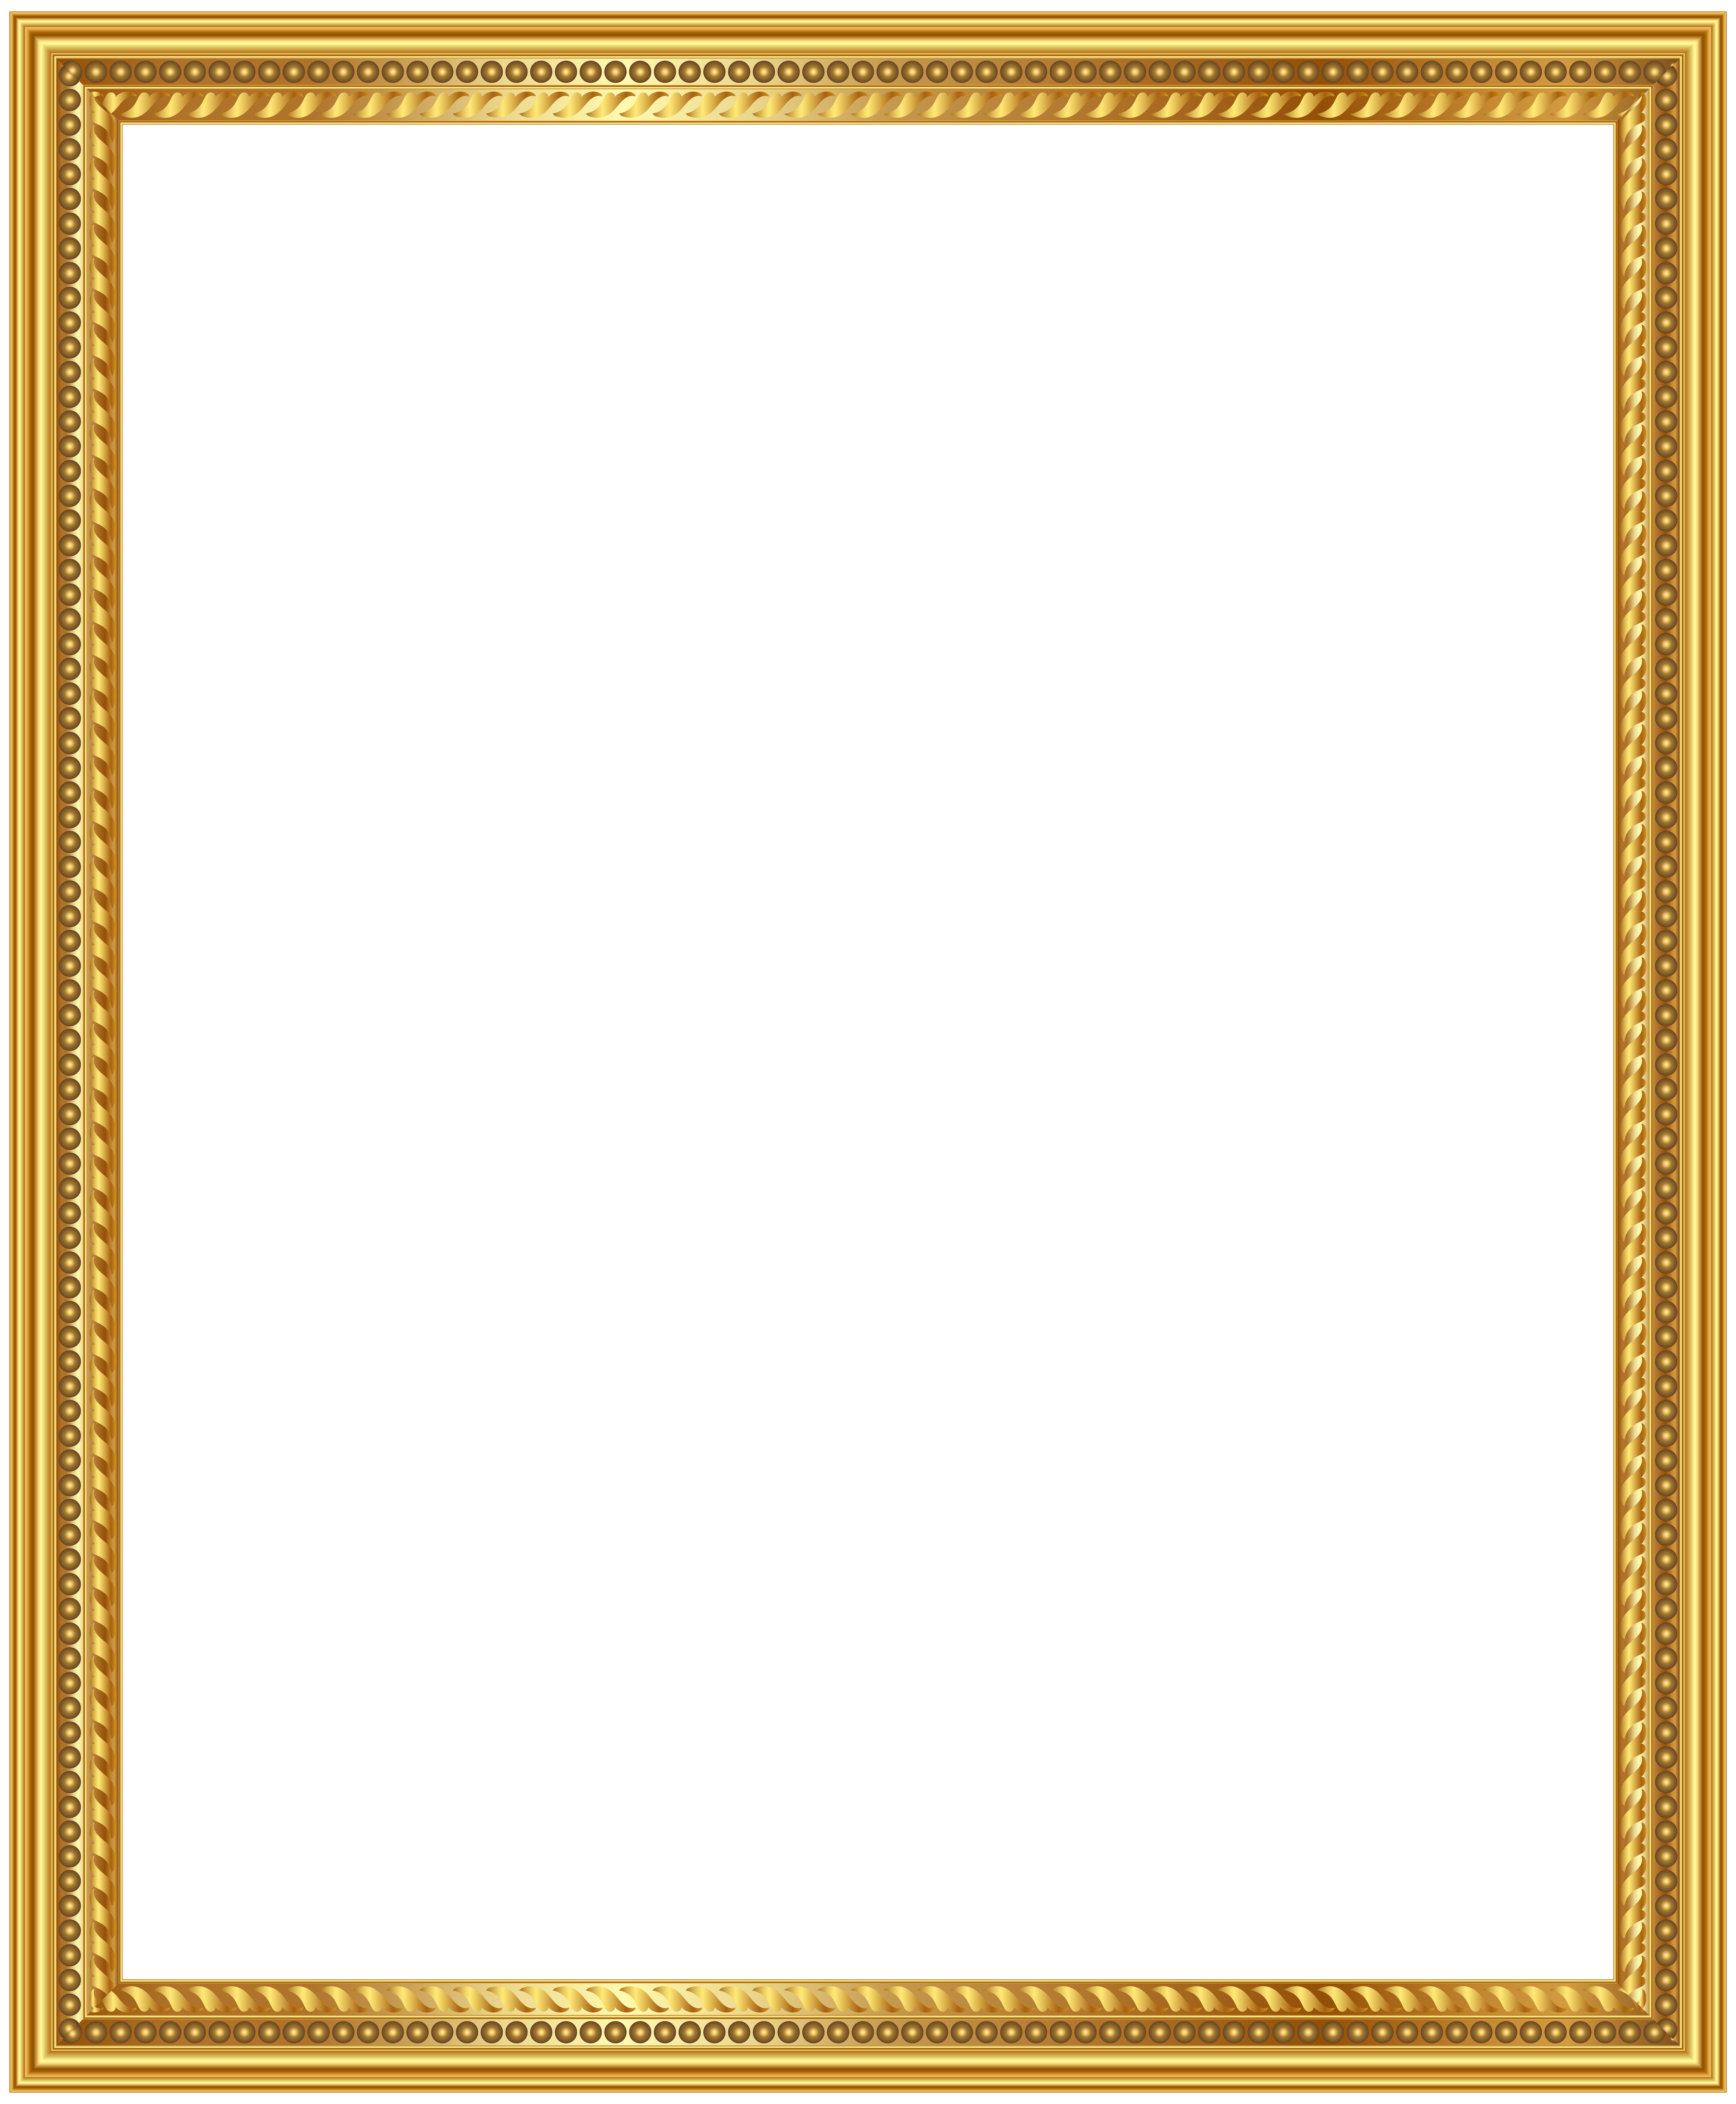 Gold Deco Frame Png Clip Art Image Gallery Yopriceville High Quality Images And Transparent Png Free Clipart Clip Art Art Images Gold Texture Background